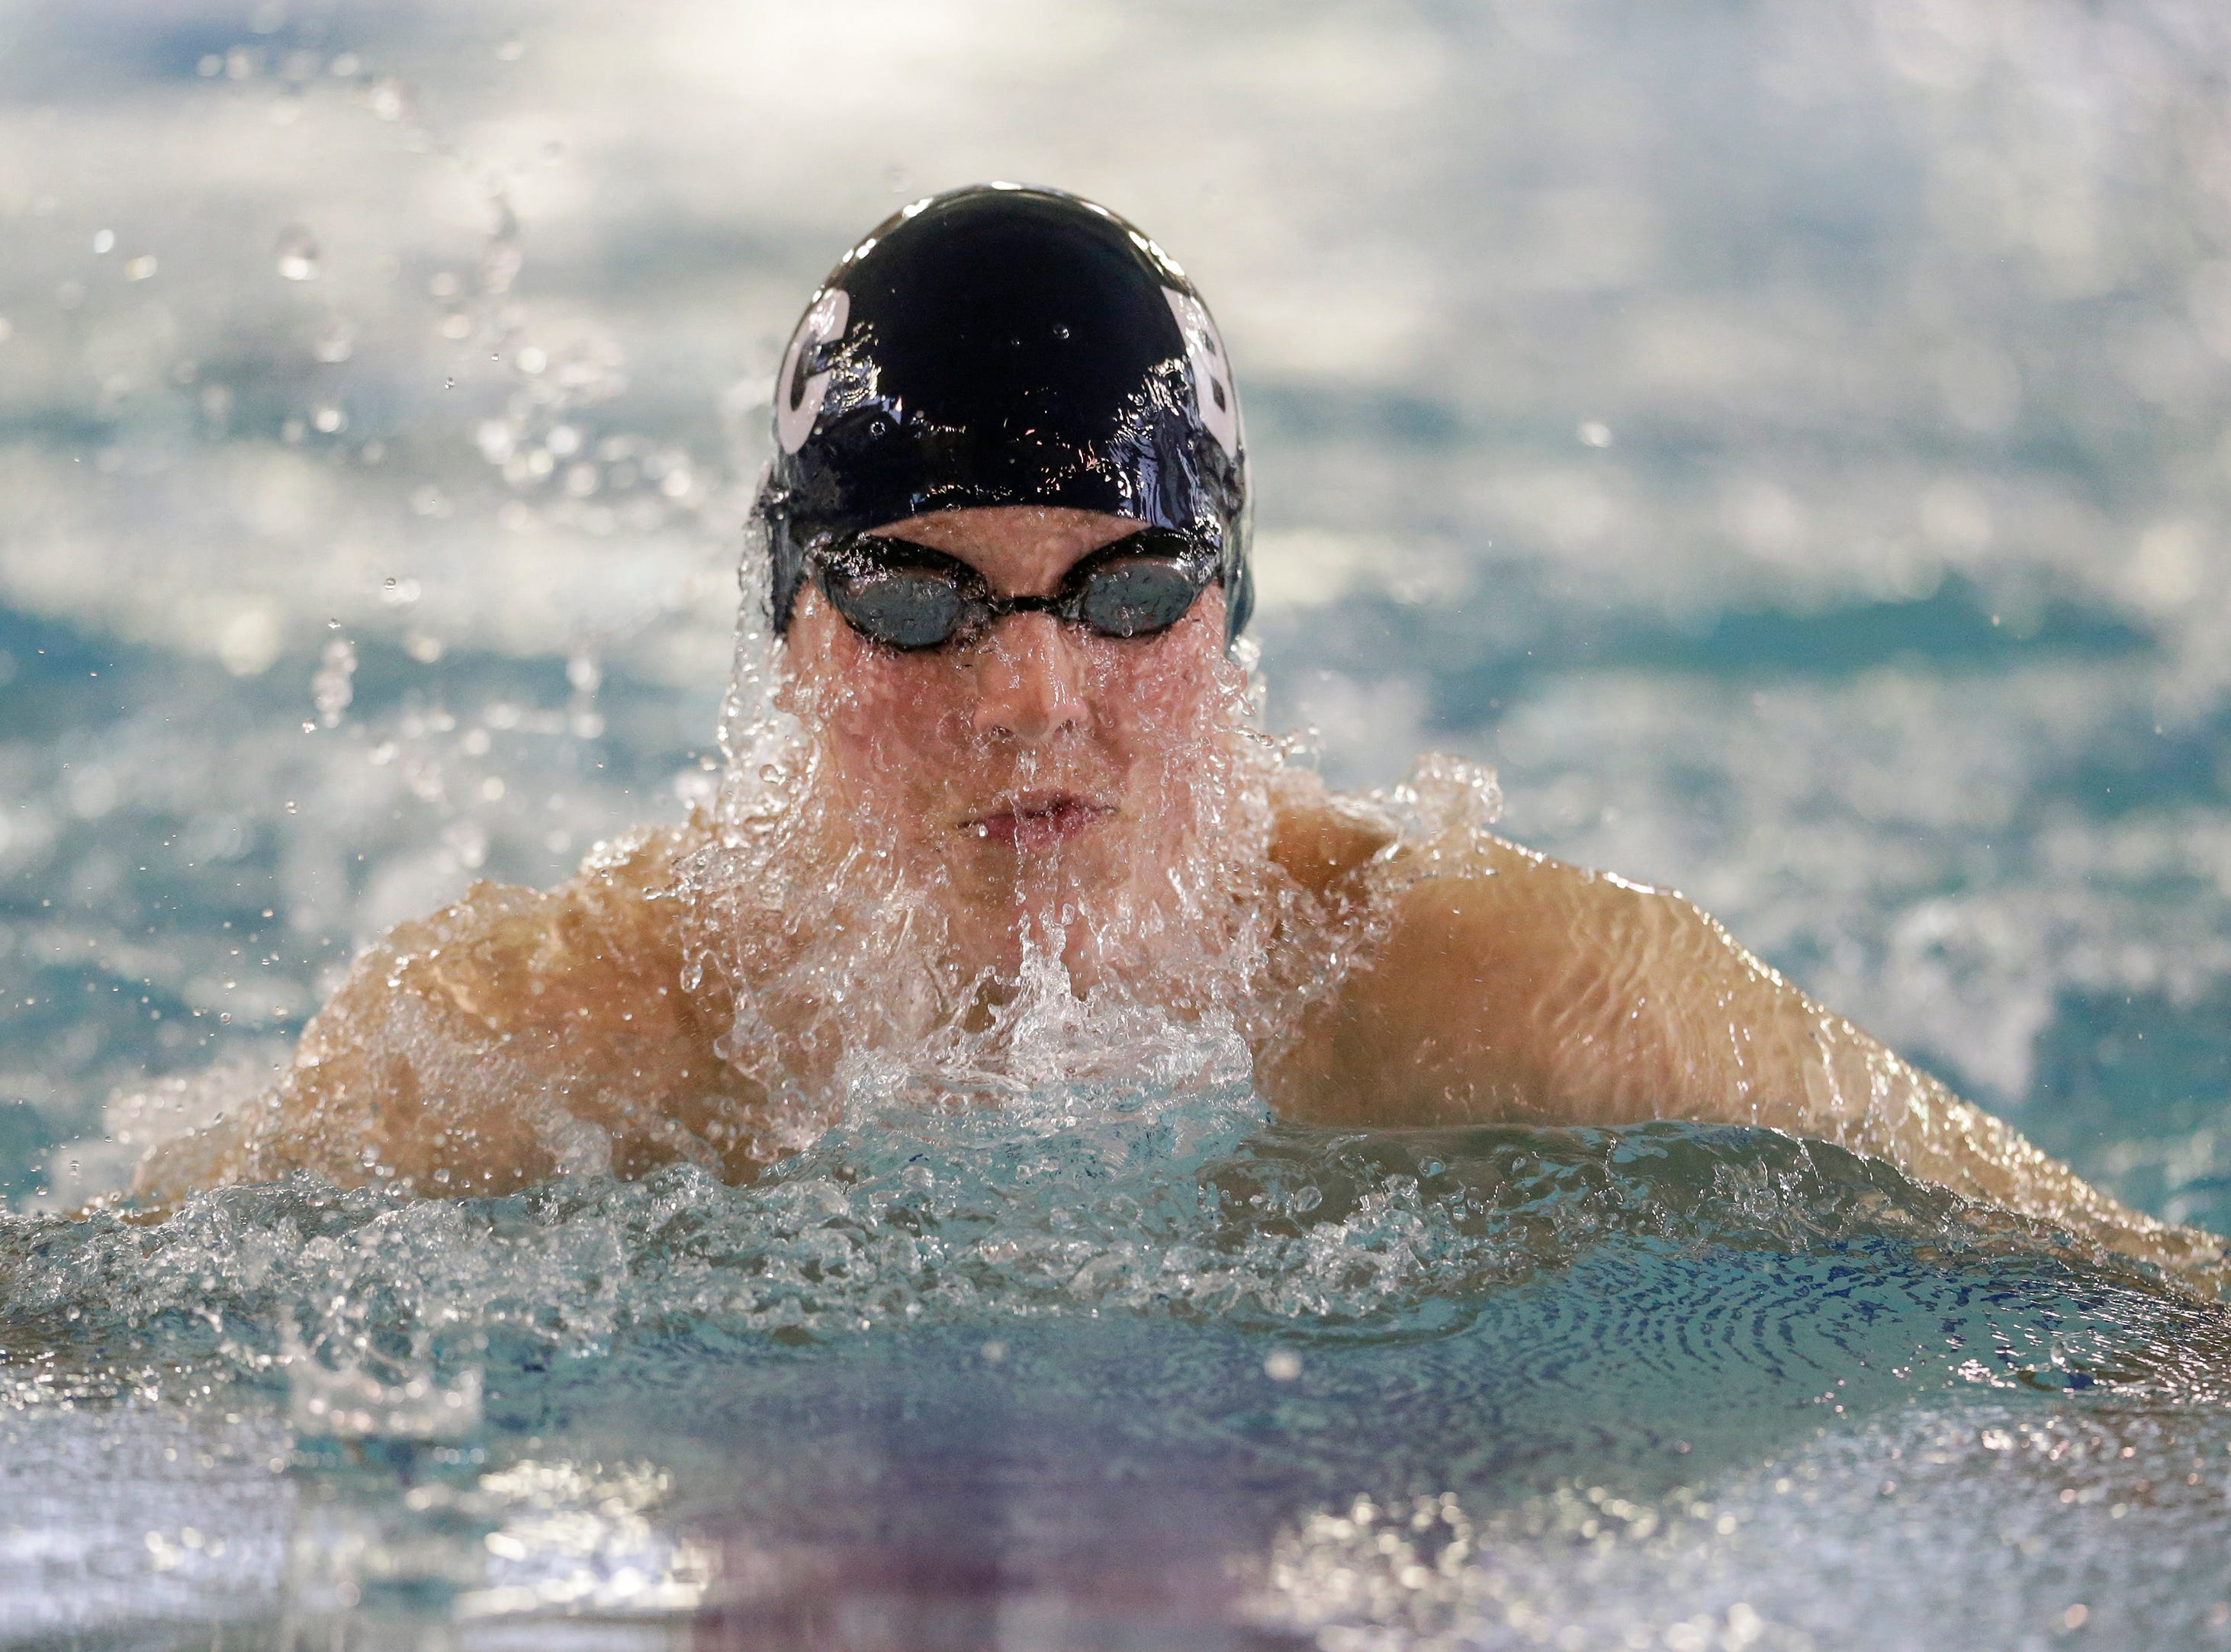 Brillion/Chilton/Valders' Parker Sonnabend swims in the 100-yard breaststroke during the Lincoln Boys Swim Invitational at Manitowoc Lincoln High School Saturday, January 12, 2019, in Manitowoc, Wis. Joshua Clark/USA TODAY NETWORK-Wisconsin